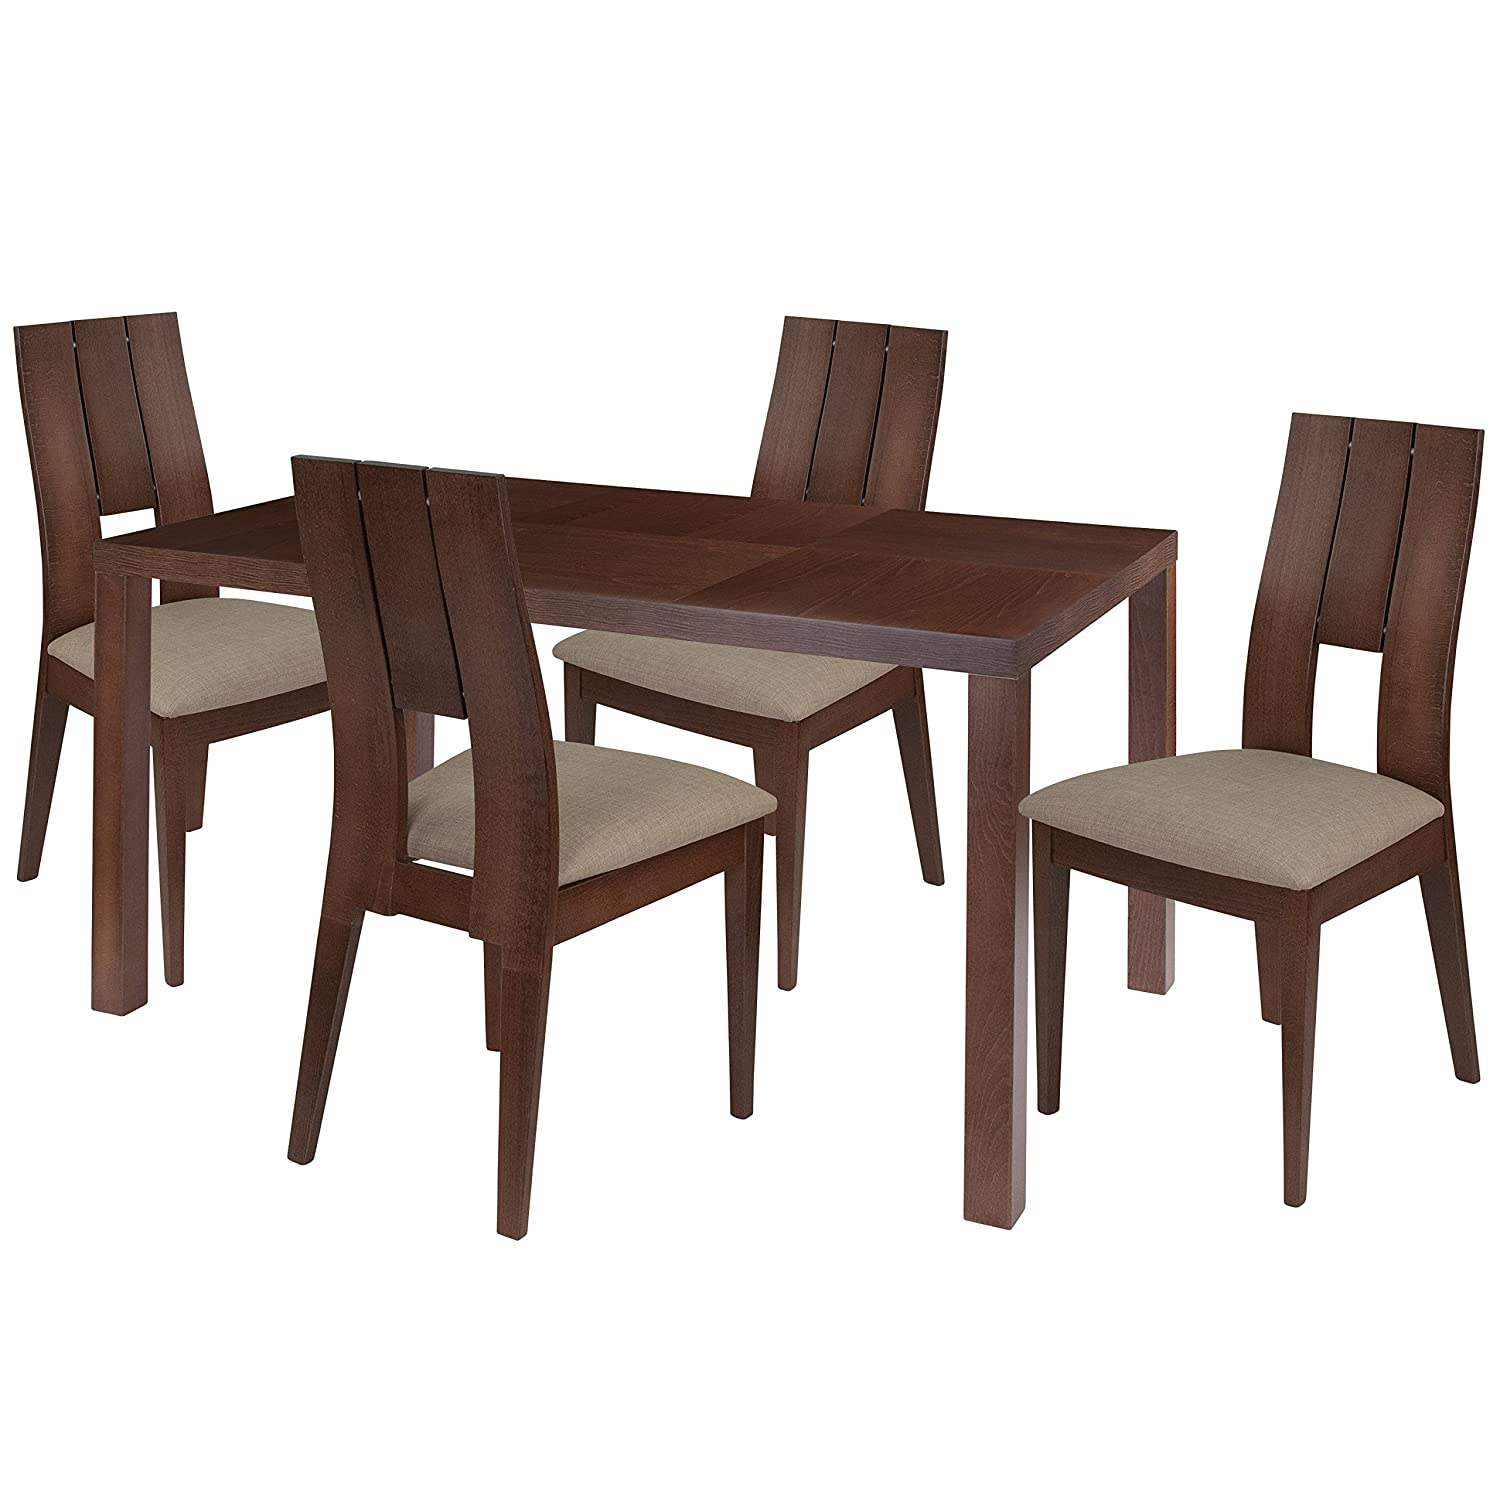 Amazon com flash furniture dalston 5 piece walnut wood dining table set with curved slat keyhole back wood dining chairs padded seats walnut beechwood